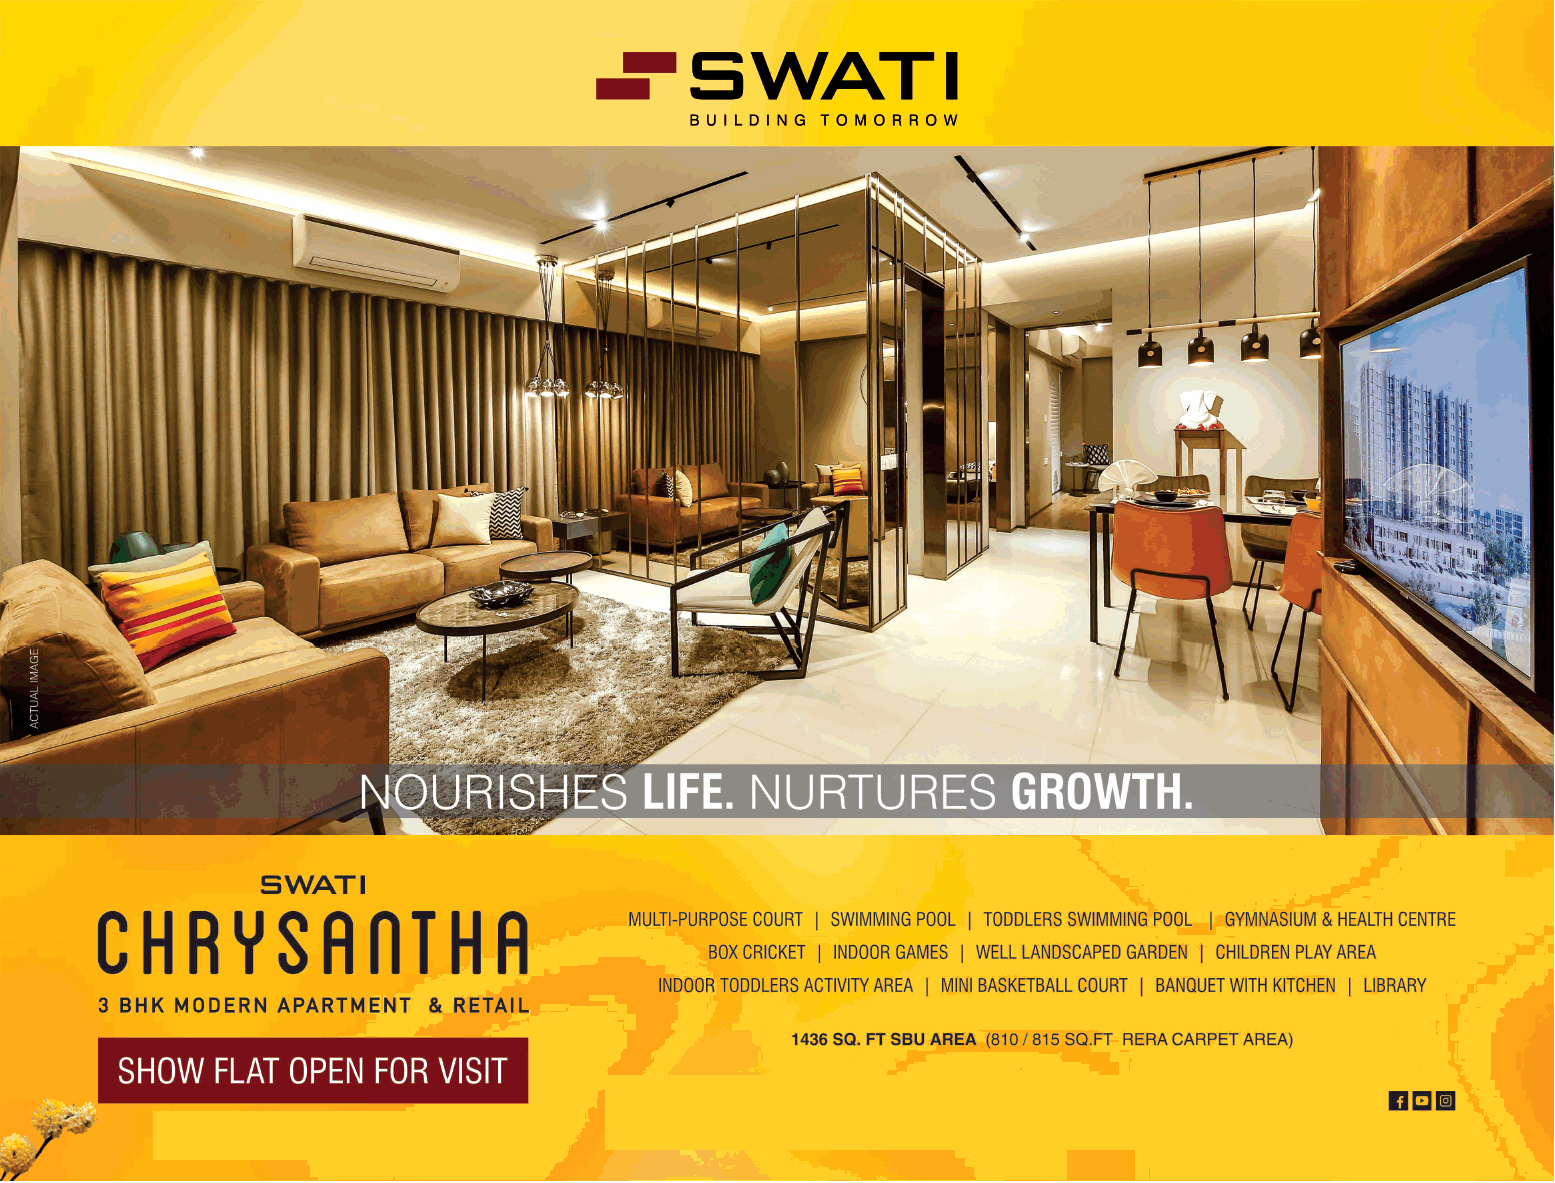 Avail 3 BHK apartment and retail at Swati Chrysantha Ahmedabad